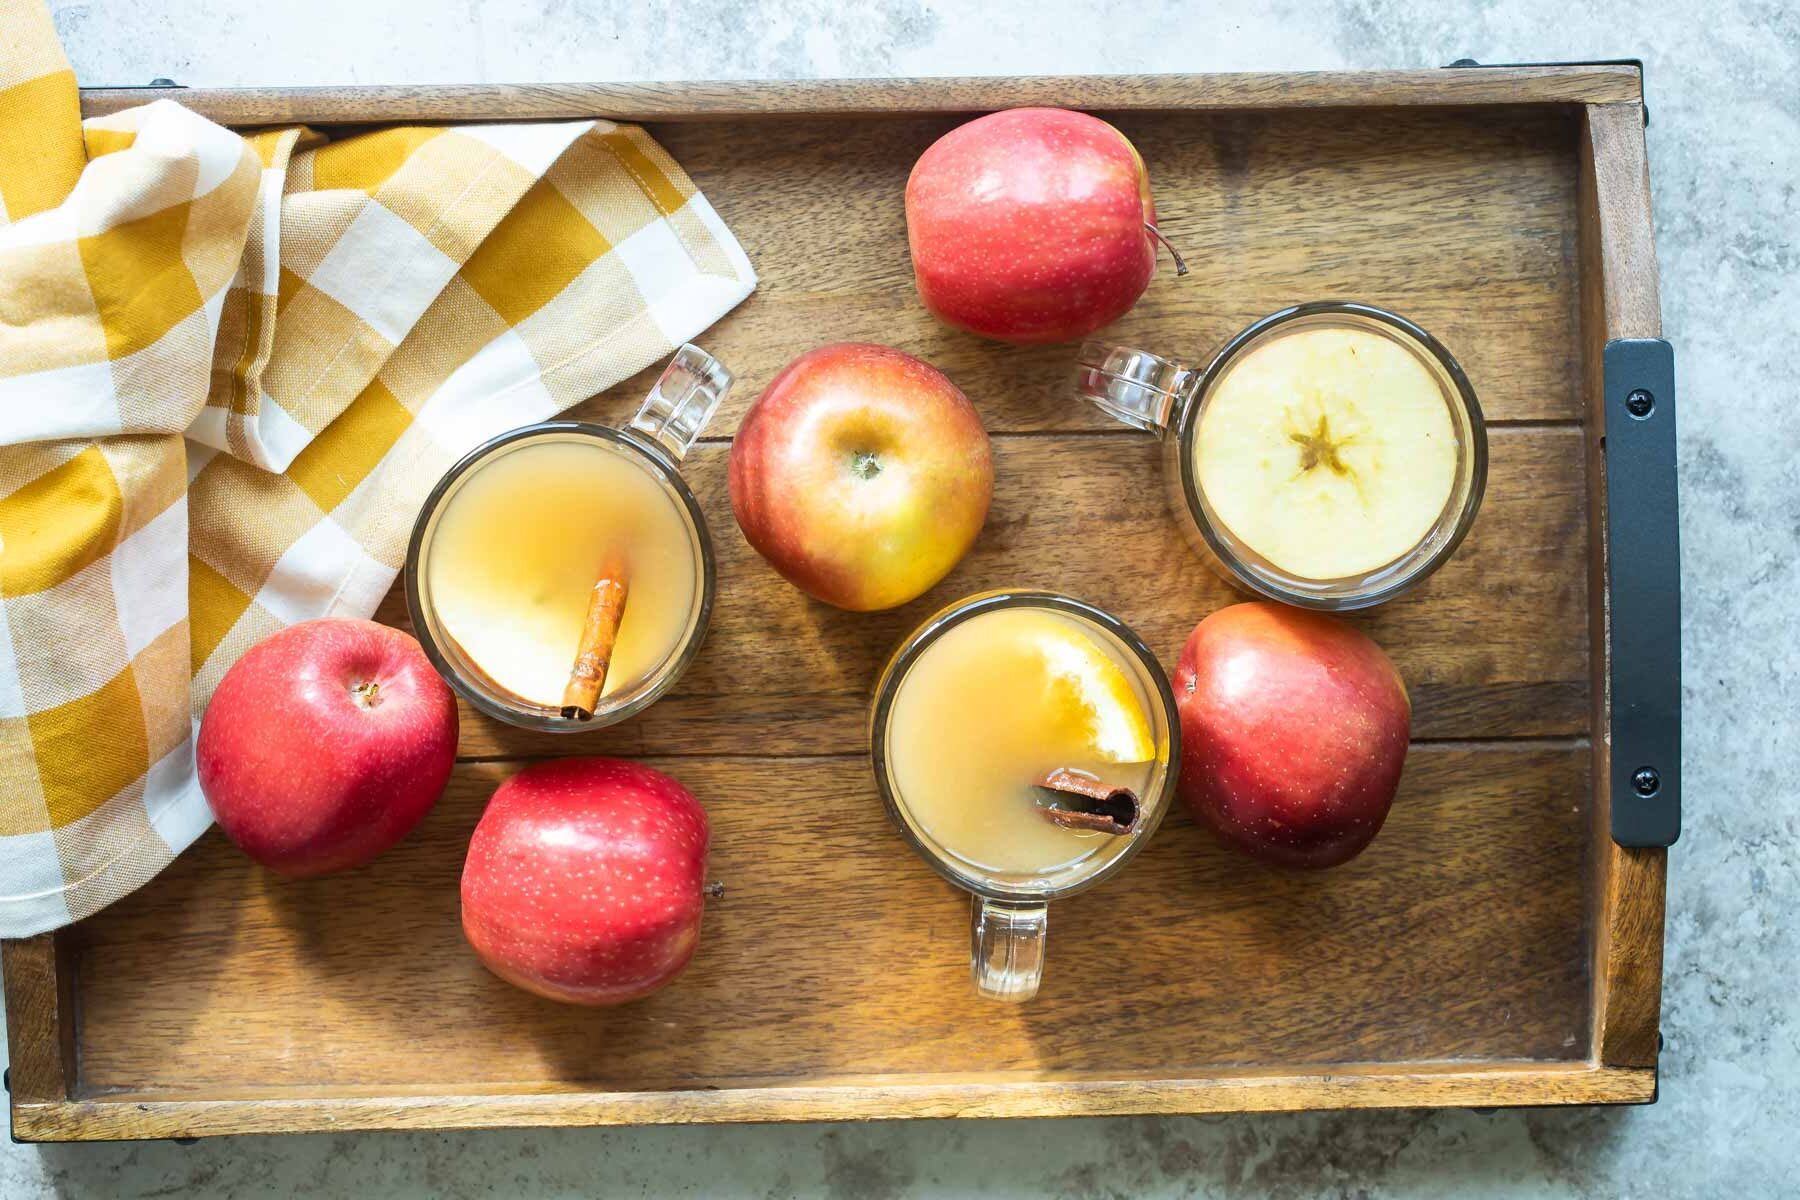 Apple cider in a clear glasses on a wooden serving tray.